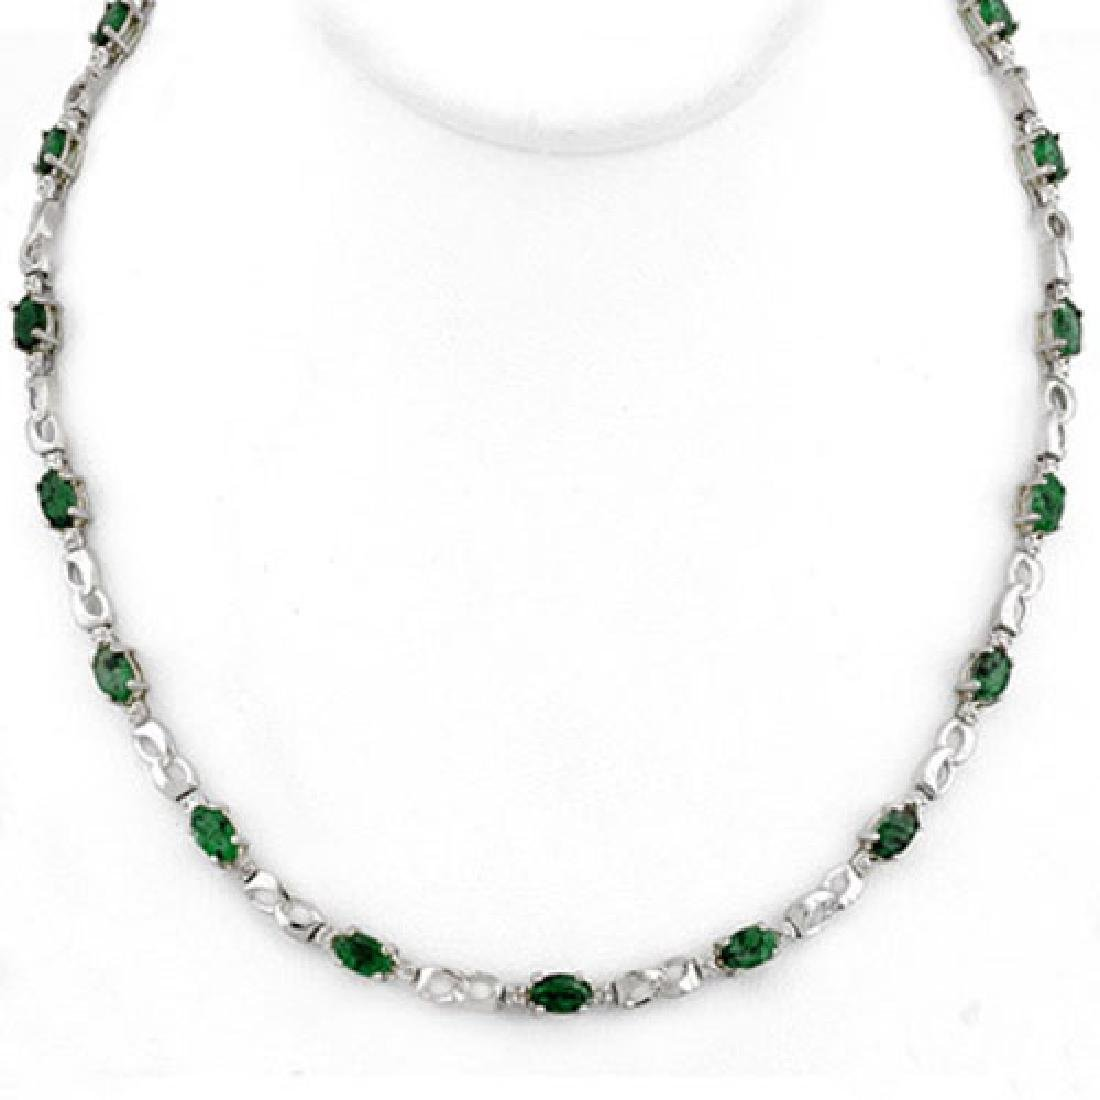 7.02 CTW Emerald & Diamond Necklace 18K White Gold